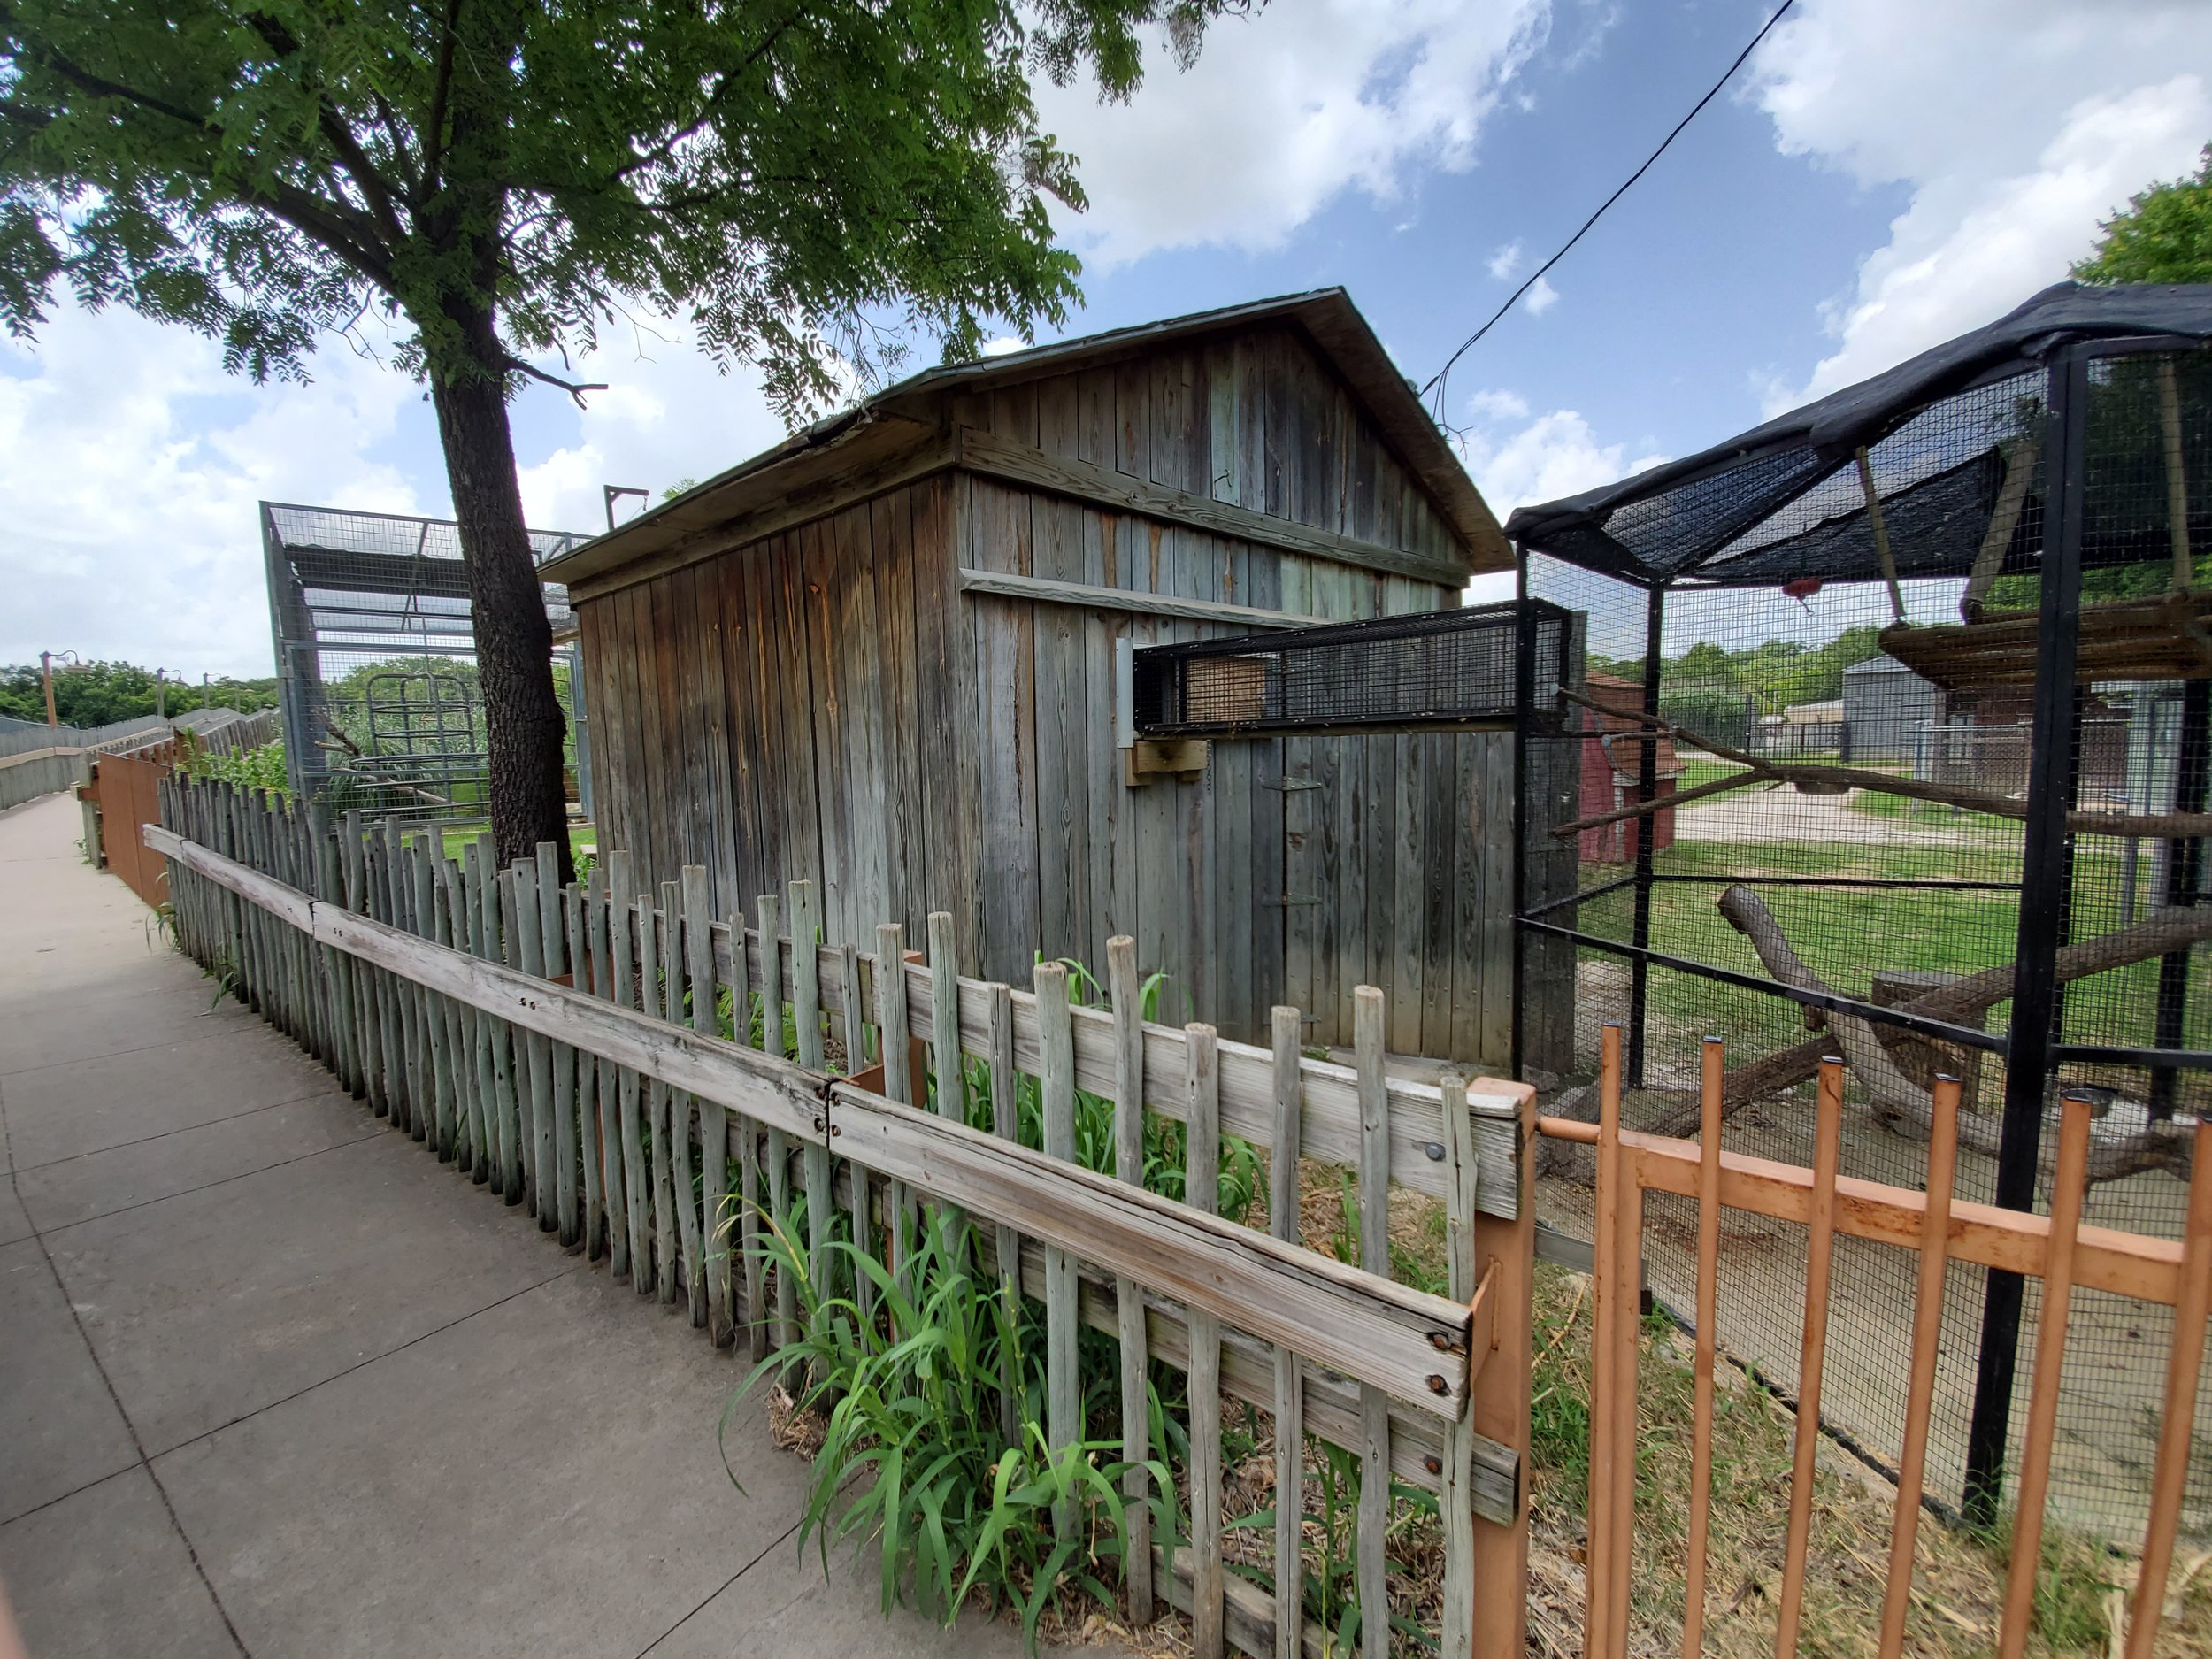 Creative reuse of old shed to create primate complex